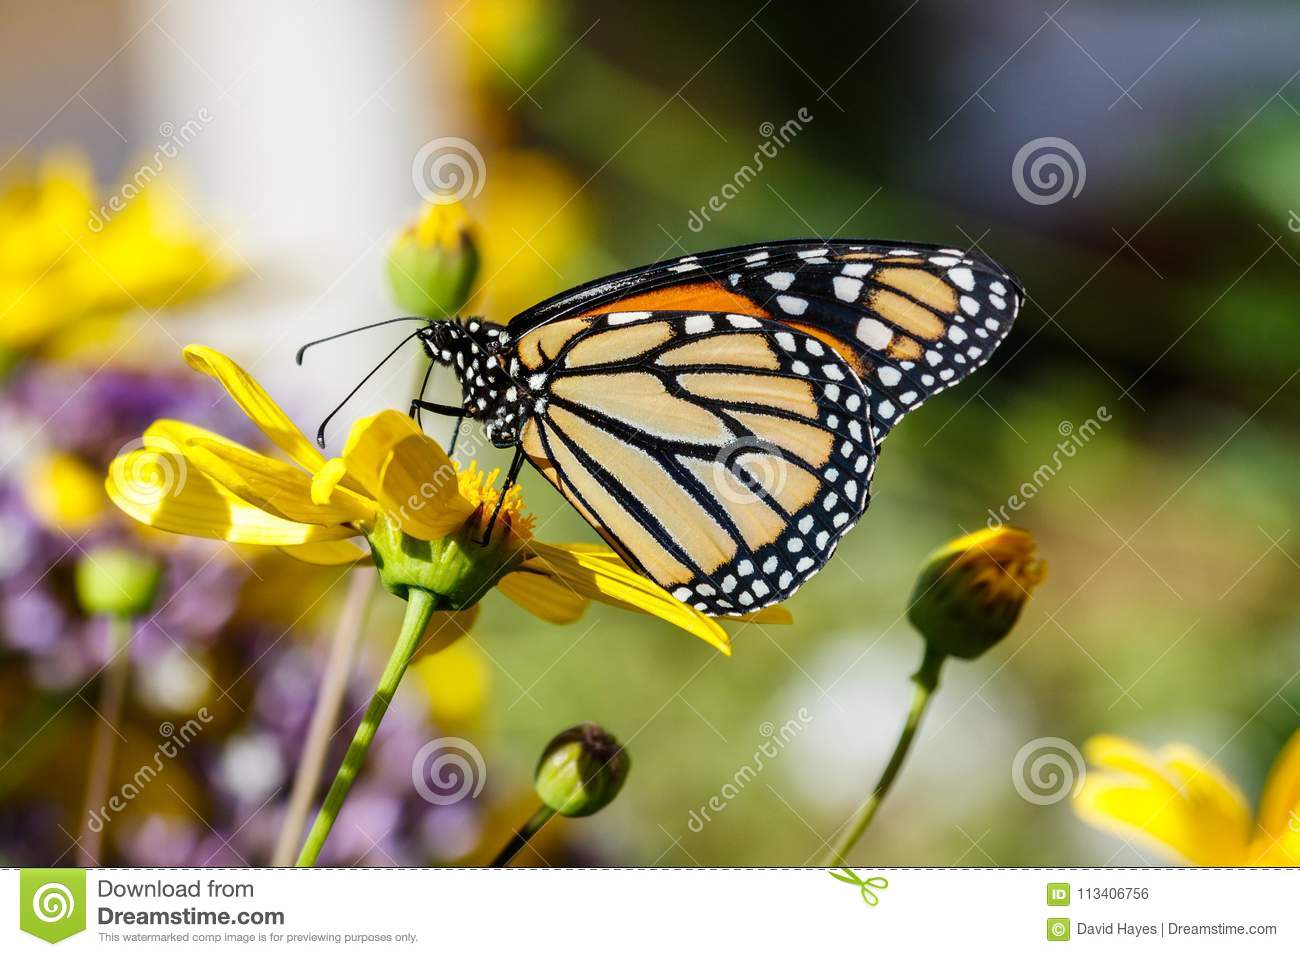 Monarch butterfly on bright yellow flower